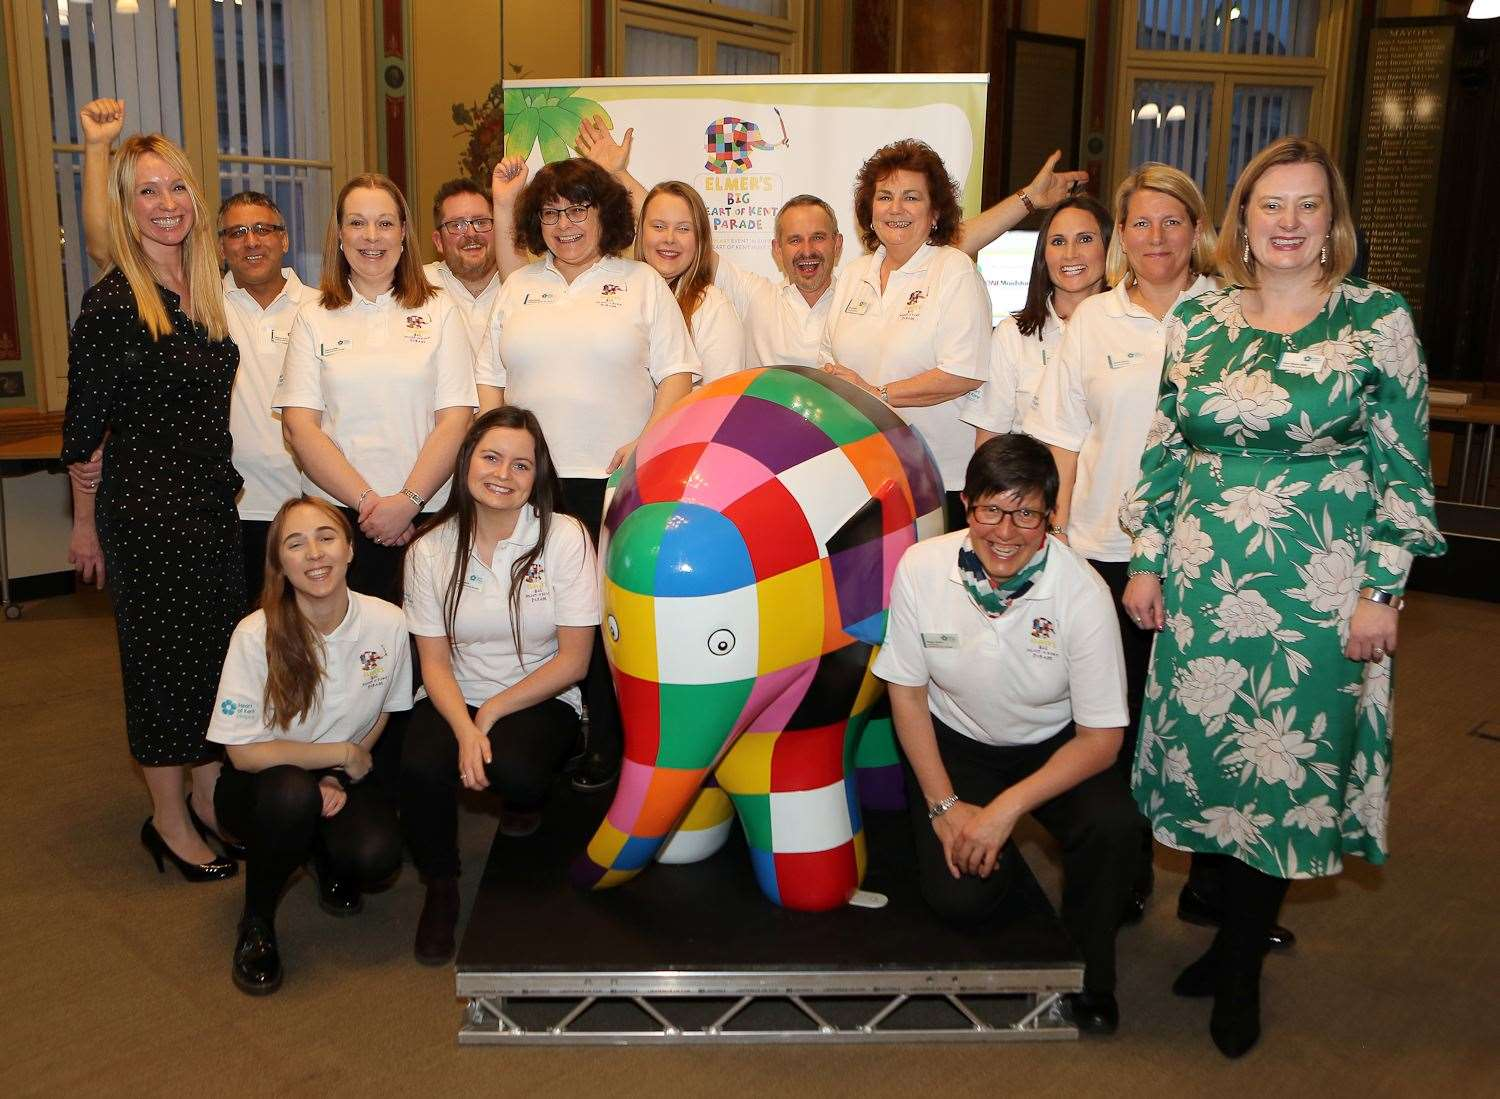 The Heart of Kent Hospice team with the Elmer model